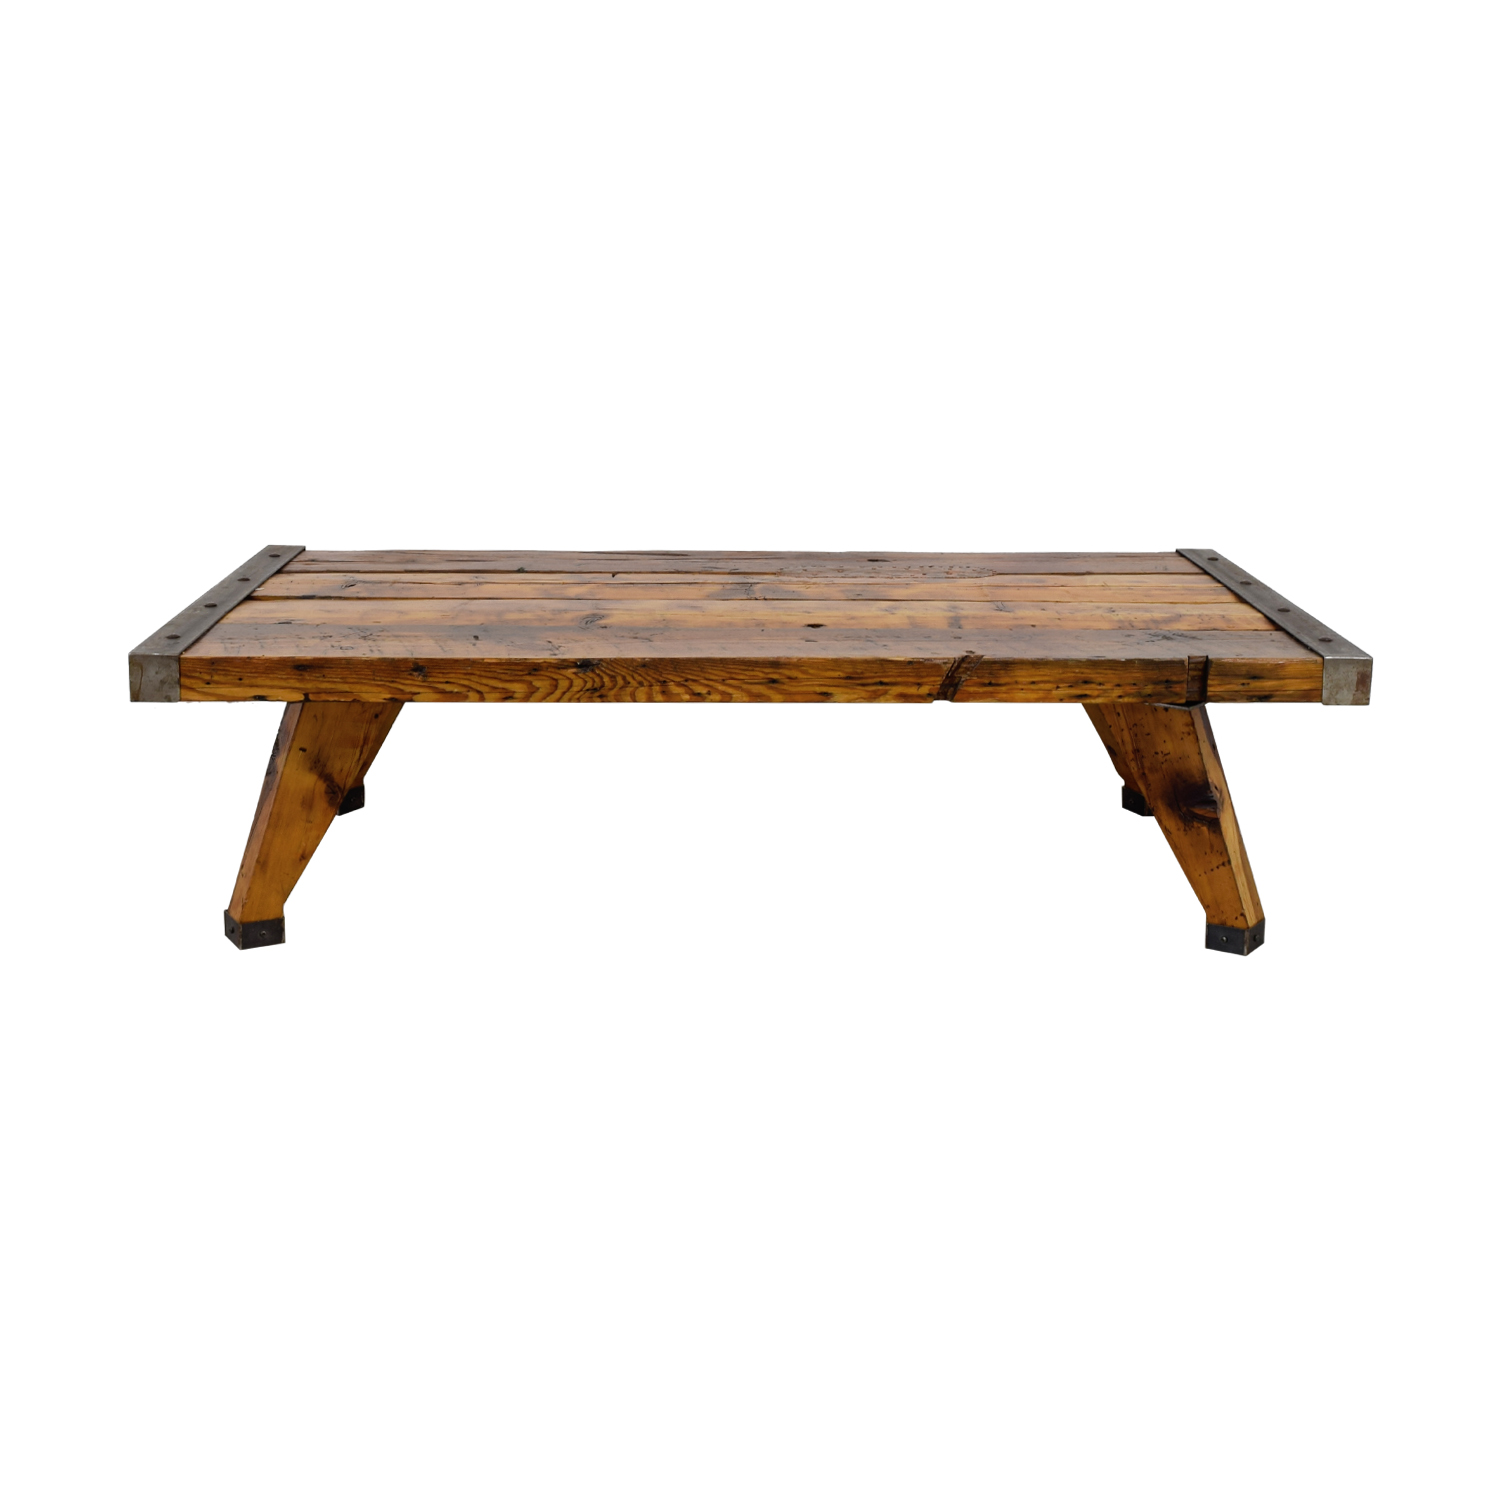 shop  Reclaimed Wood and Metal Coffee Table online